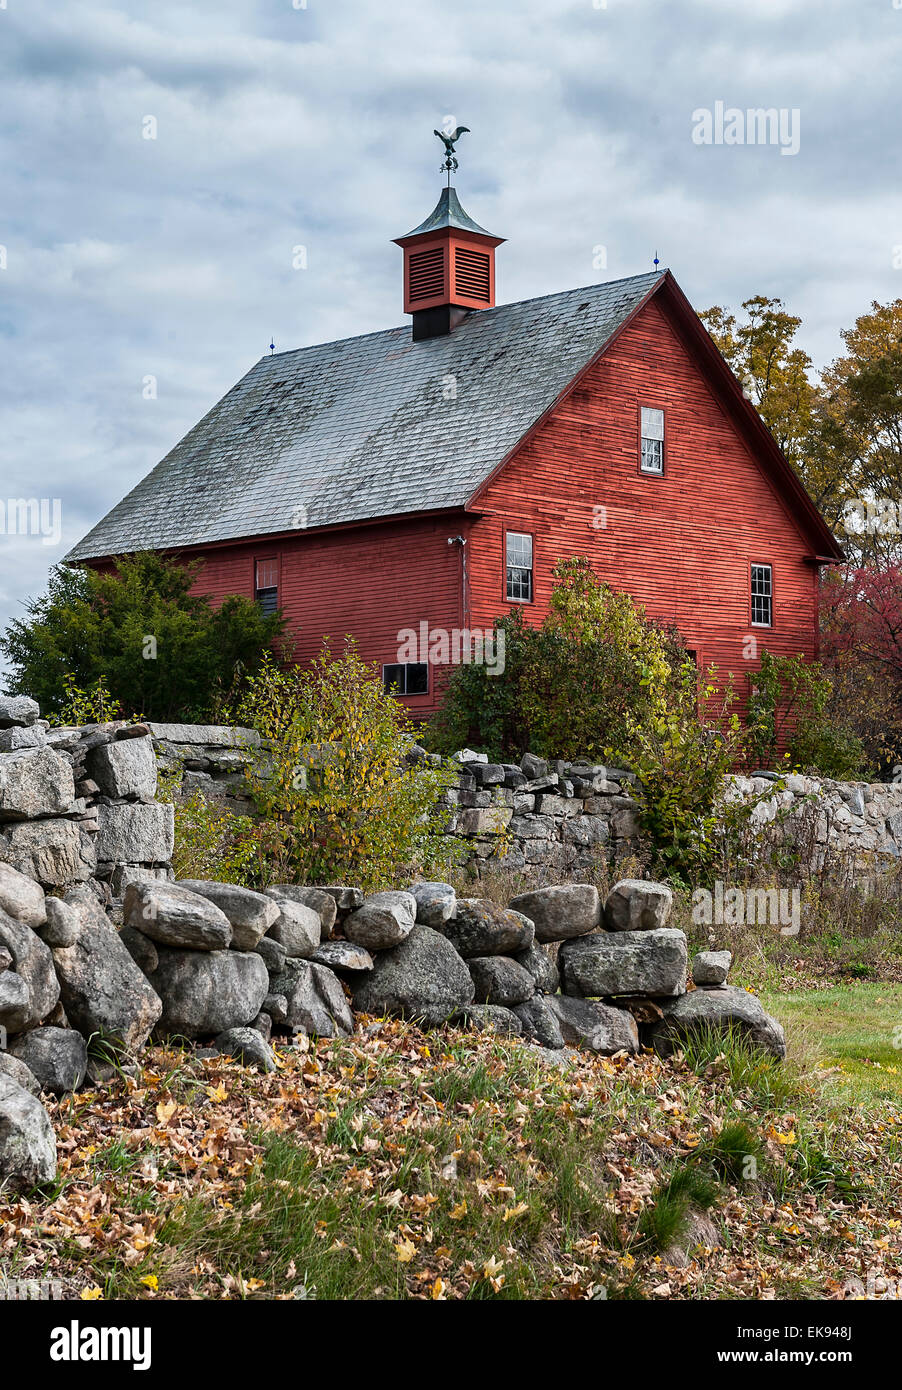 Rustic red barn, New Hampshire, USA - Stock Image